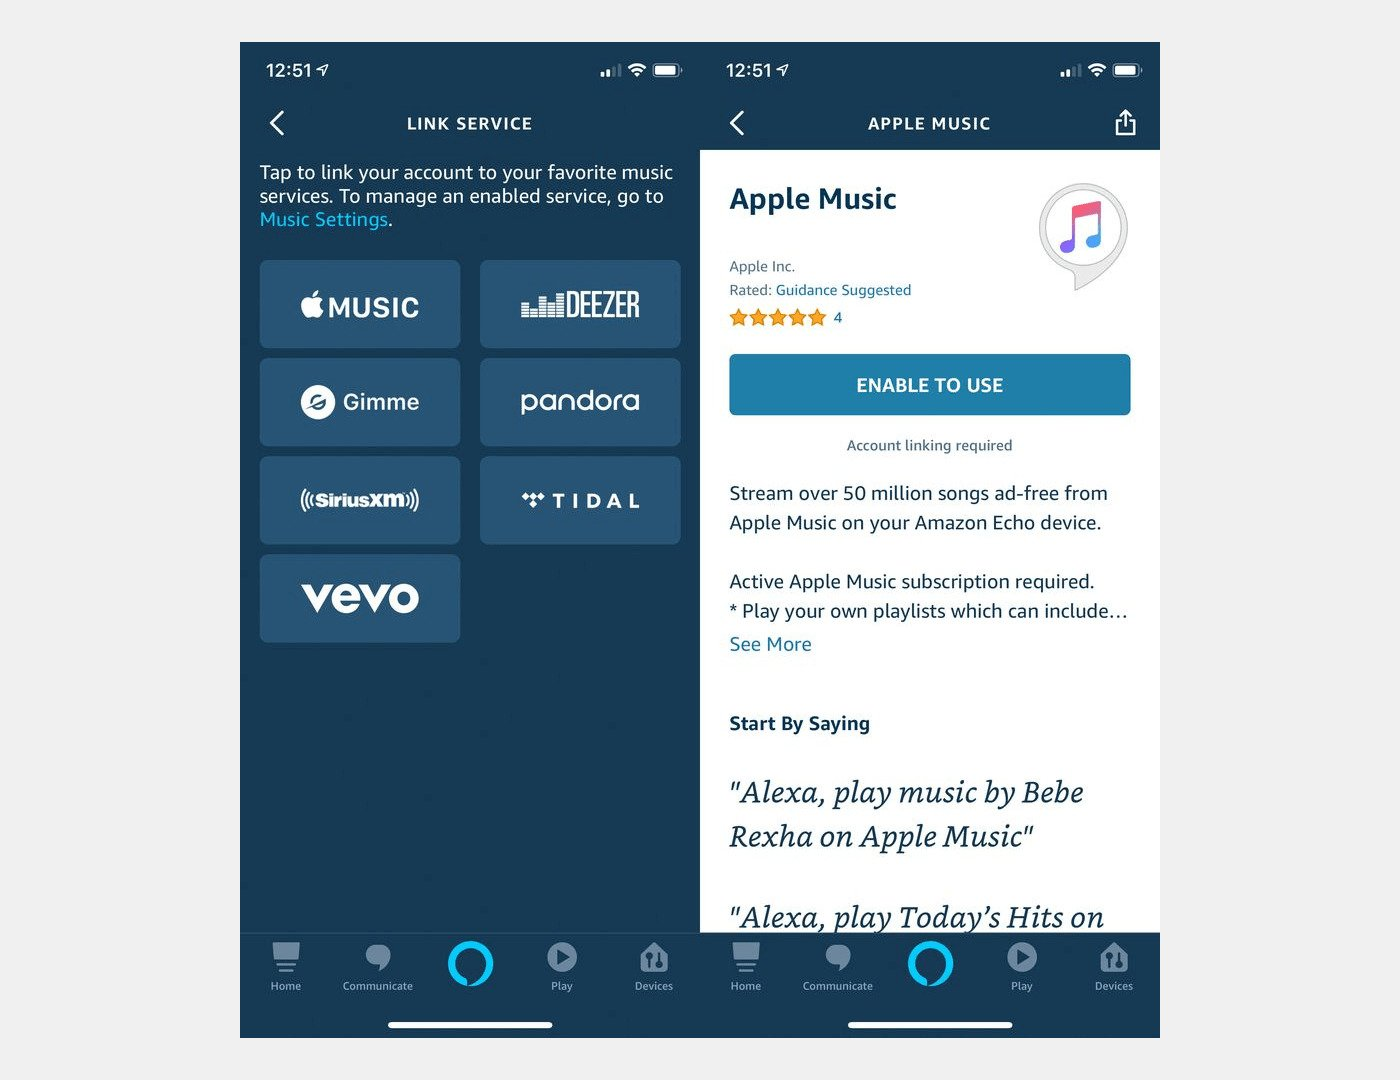 Apple Music Integration with Amazon Echo Speaker